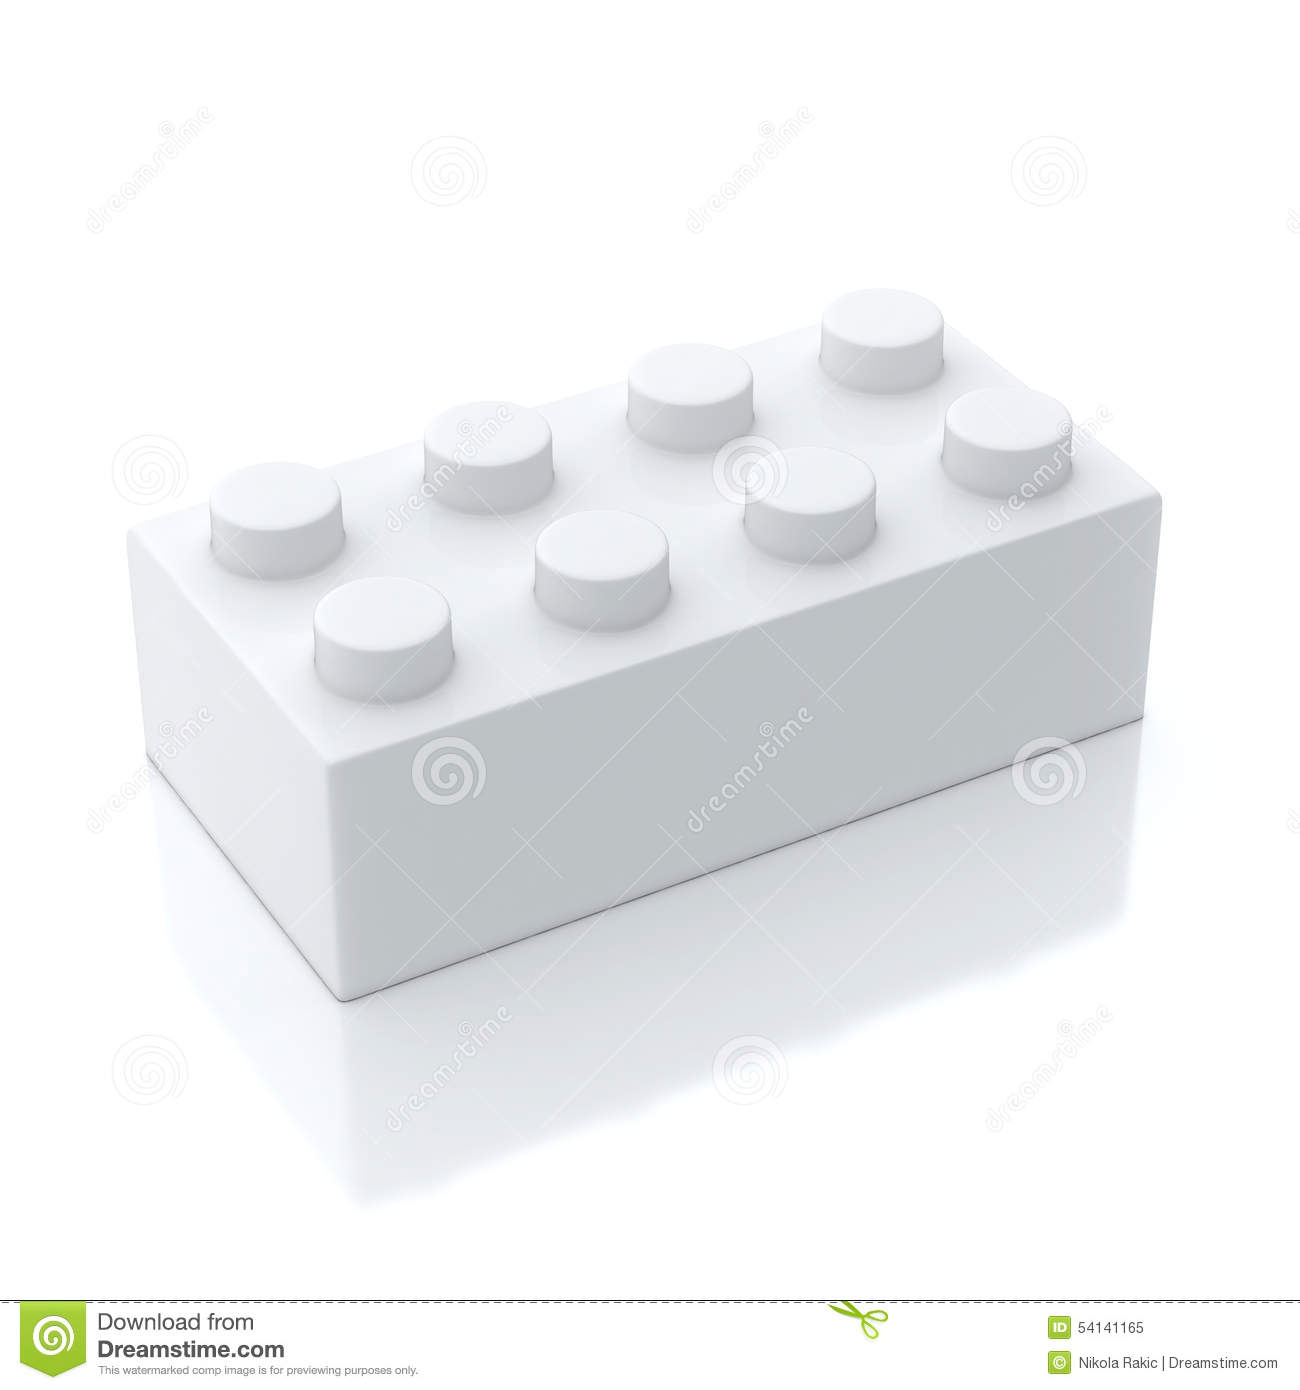 Single white building block isolated on background